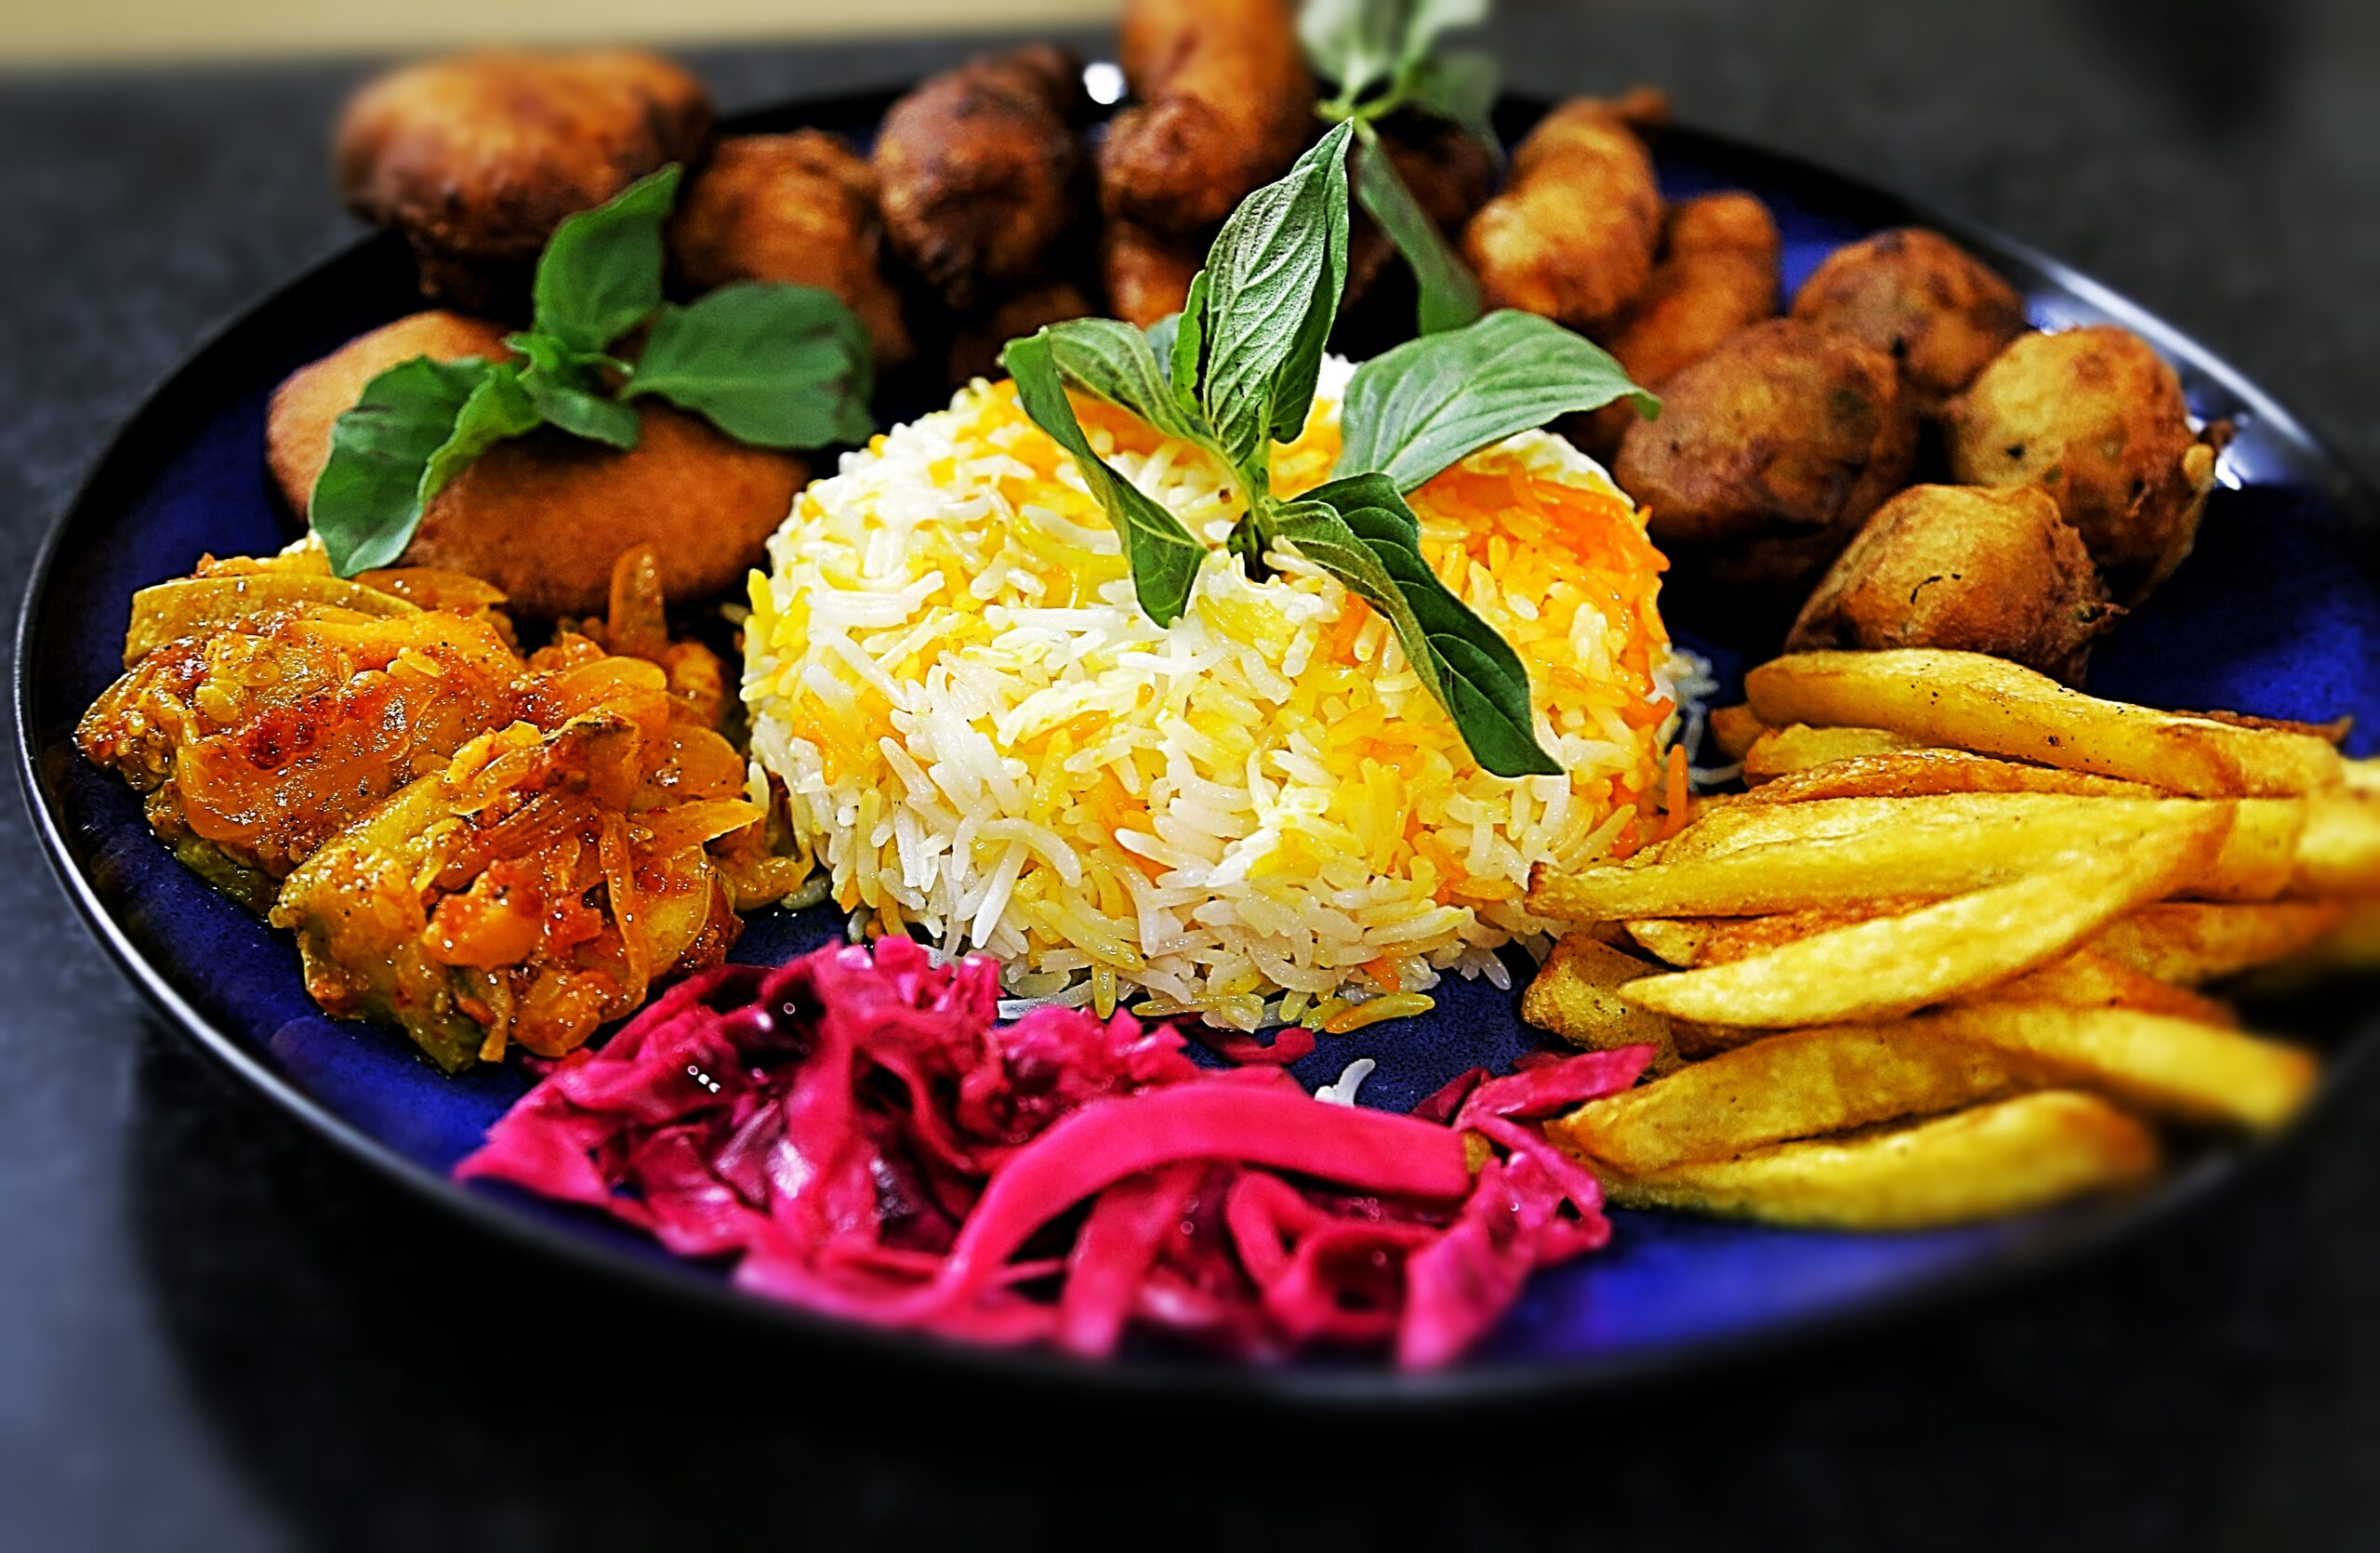 A colourful Indian dish